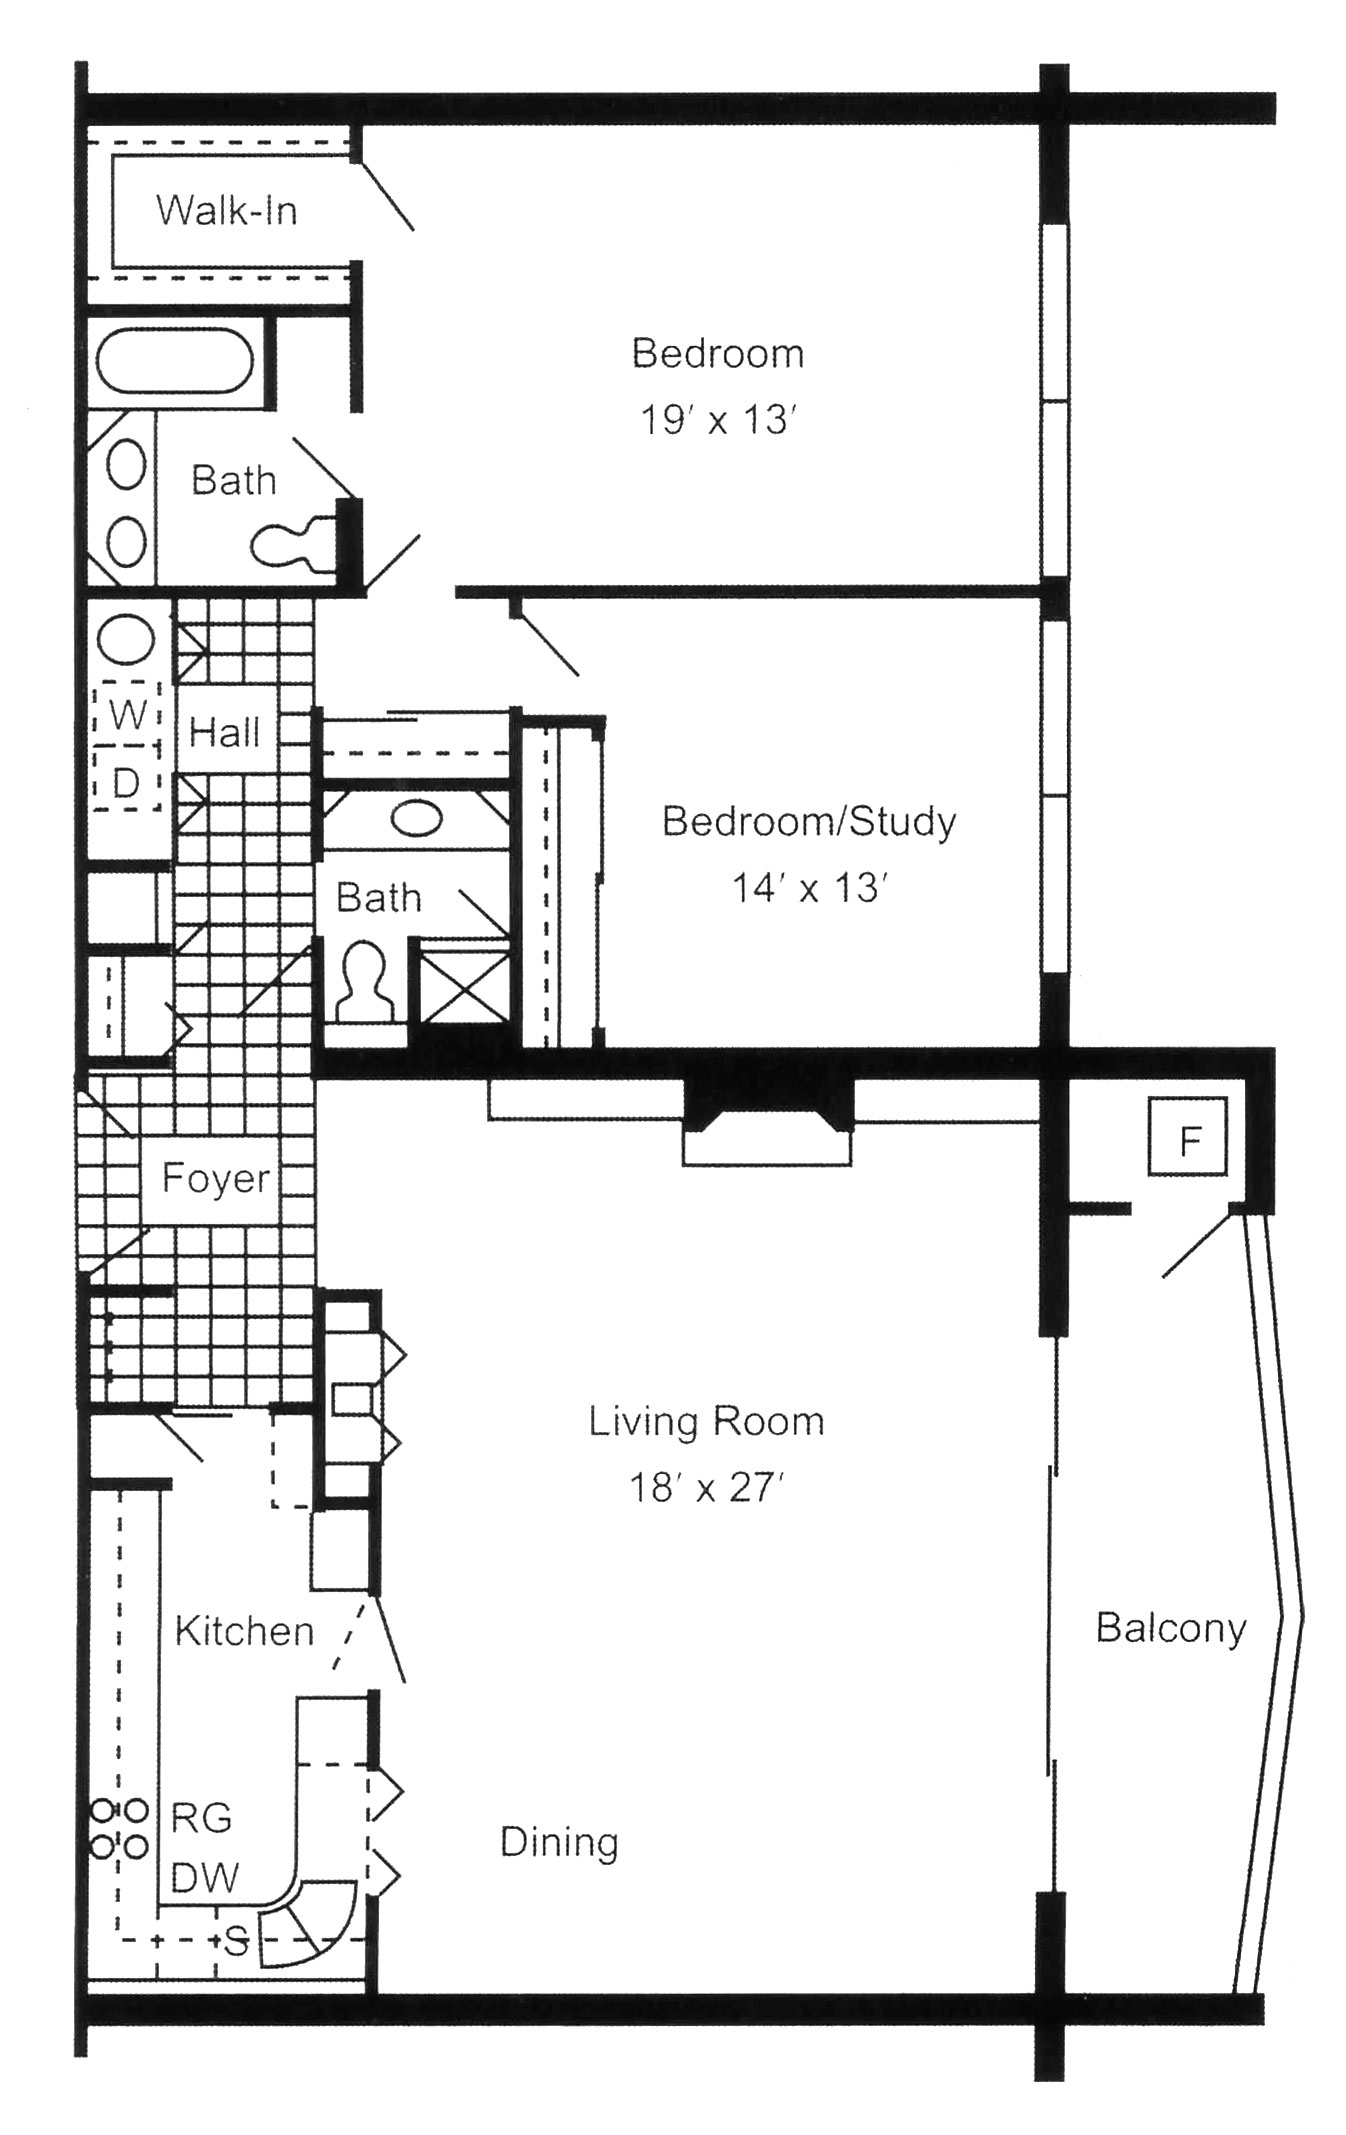 Luxury apartments in Erie, PA, South Shore Place, offers two bedroom, two bathroom 1,440 square foot apartments.